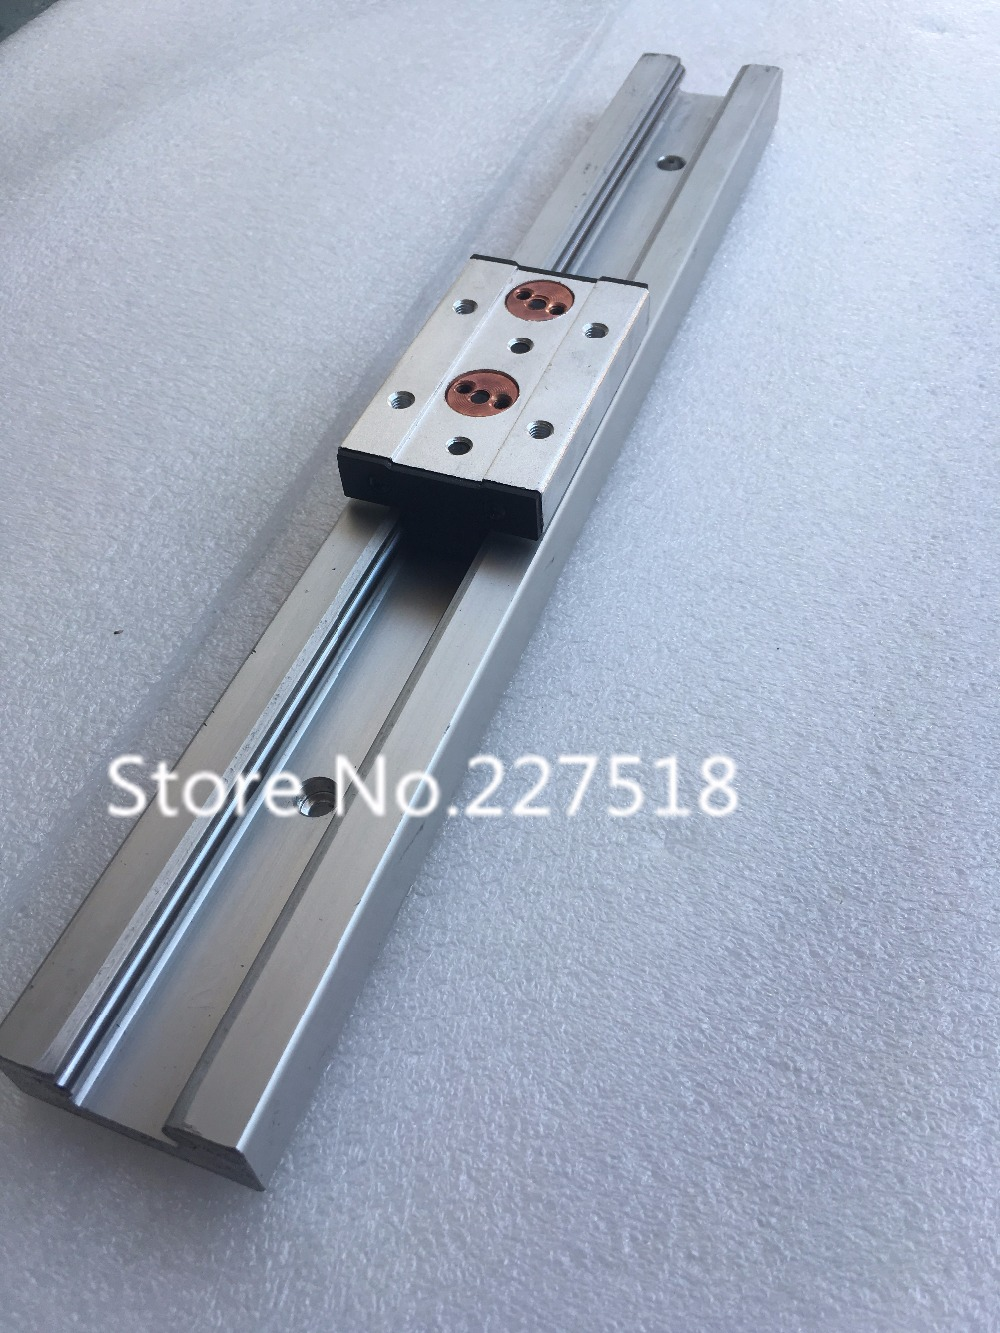 2pcs Double axis roller linear guide SGR15 L600mm +4pcs SGB15UU block multi axis core linear Motion slide rail auminum guide yatour car digital music cd changer aux mp3 sd usb adapter 8pin connector for fiat stilo 2002 radios